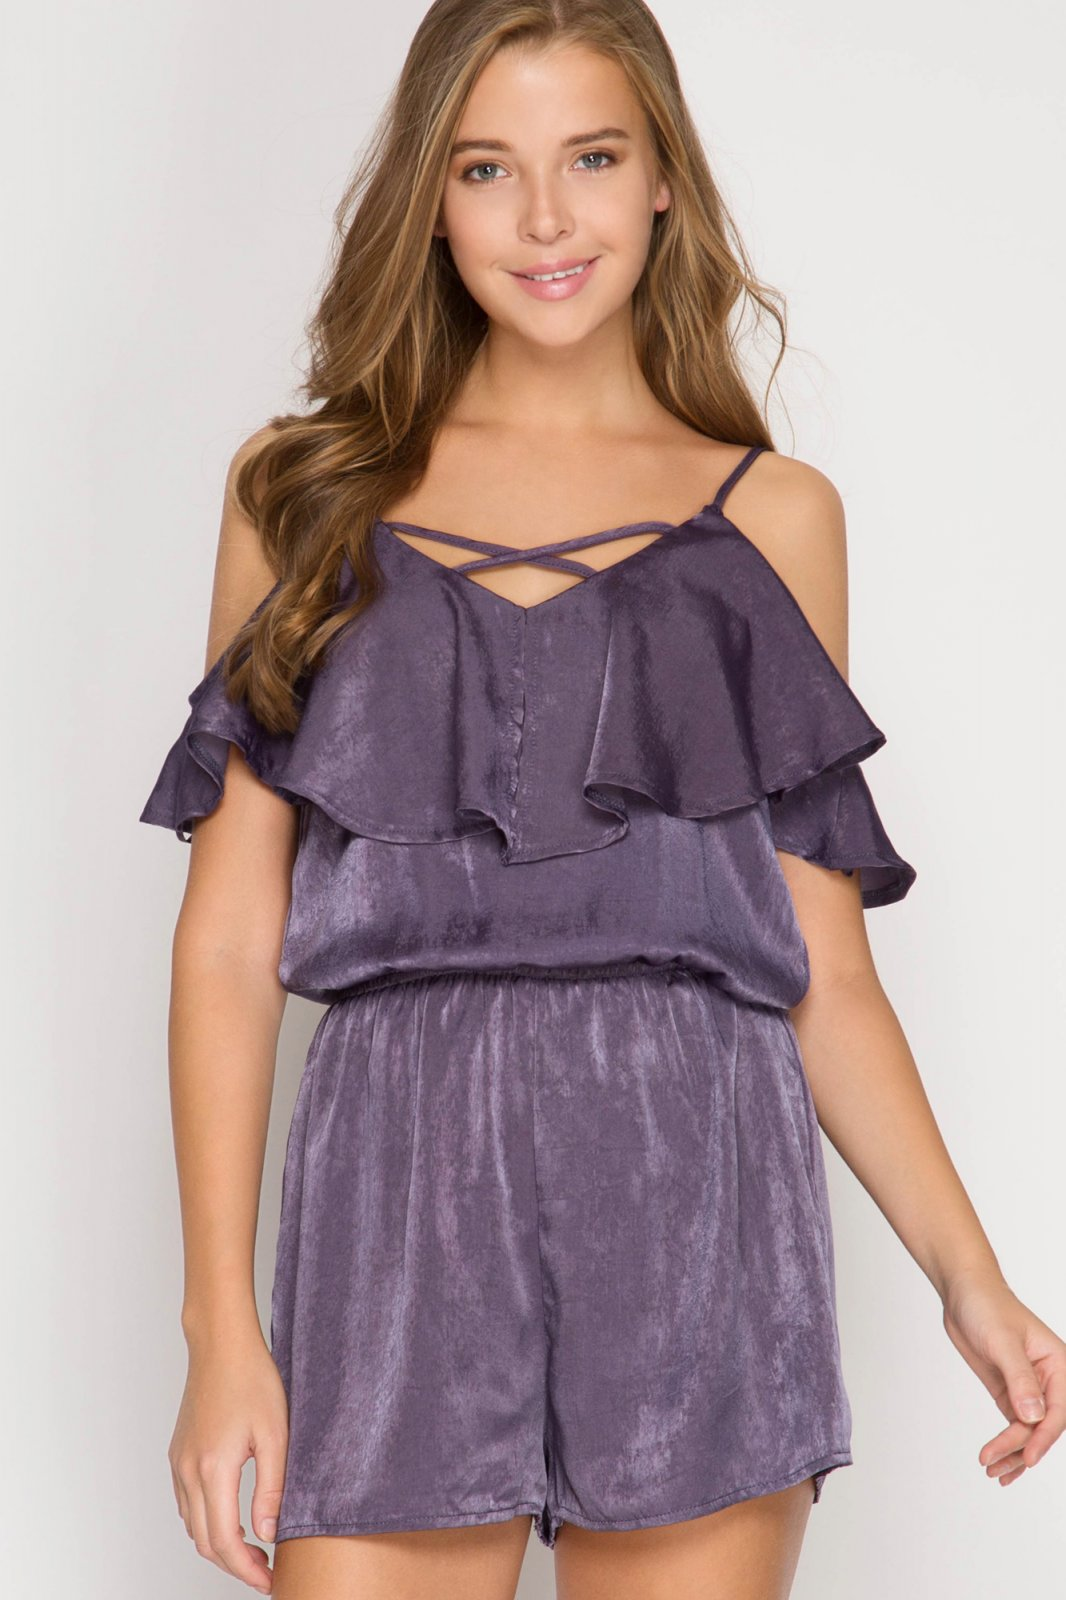 BOTTOM - ROMPER Satin DUSTY PURPLE * Jr / Ms / Adult Pt